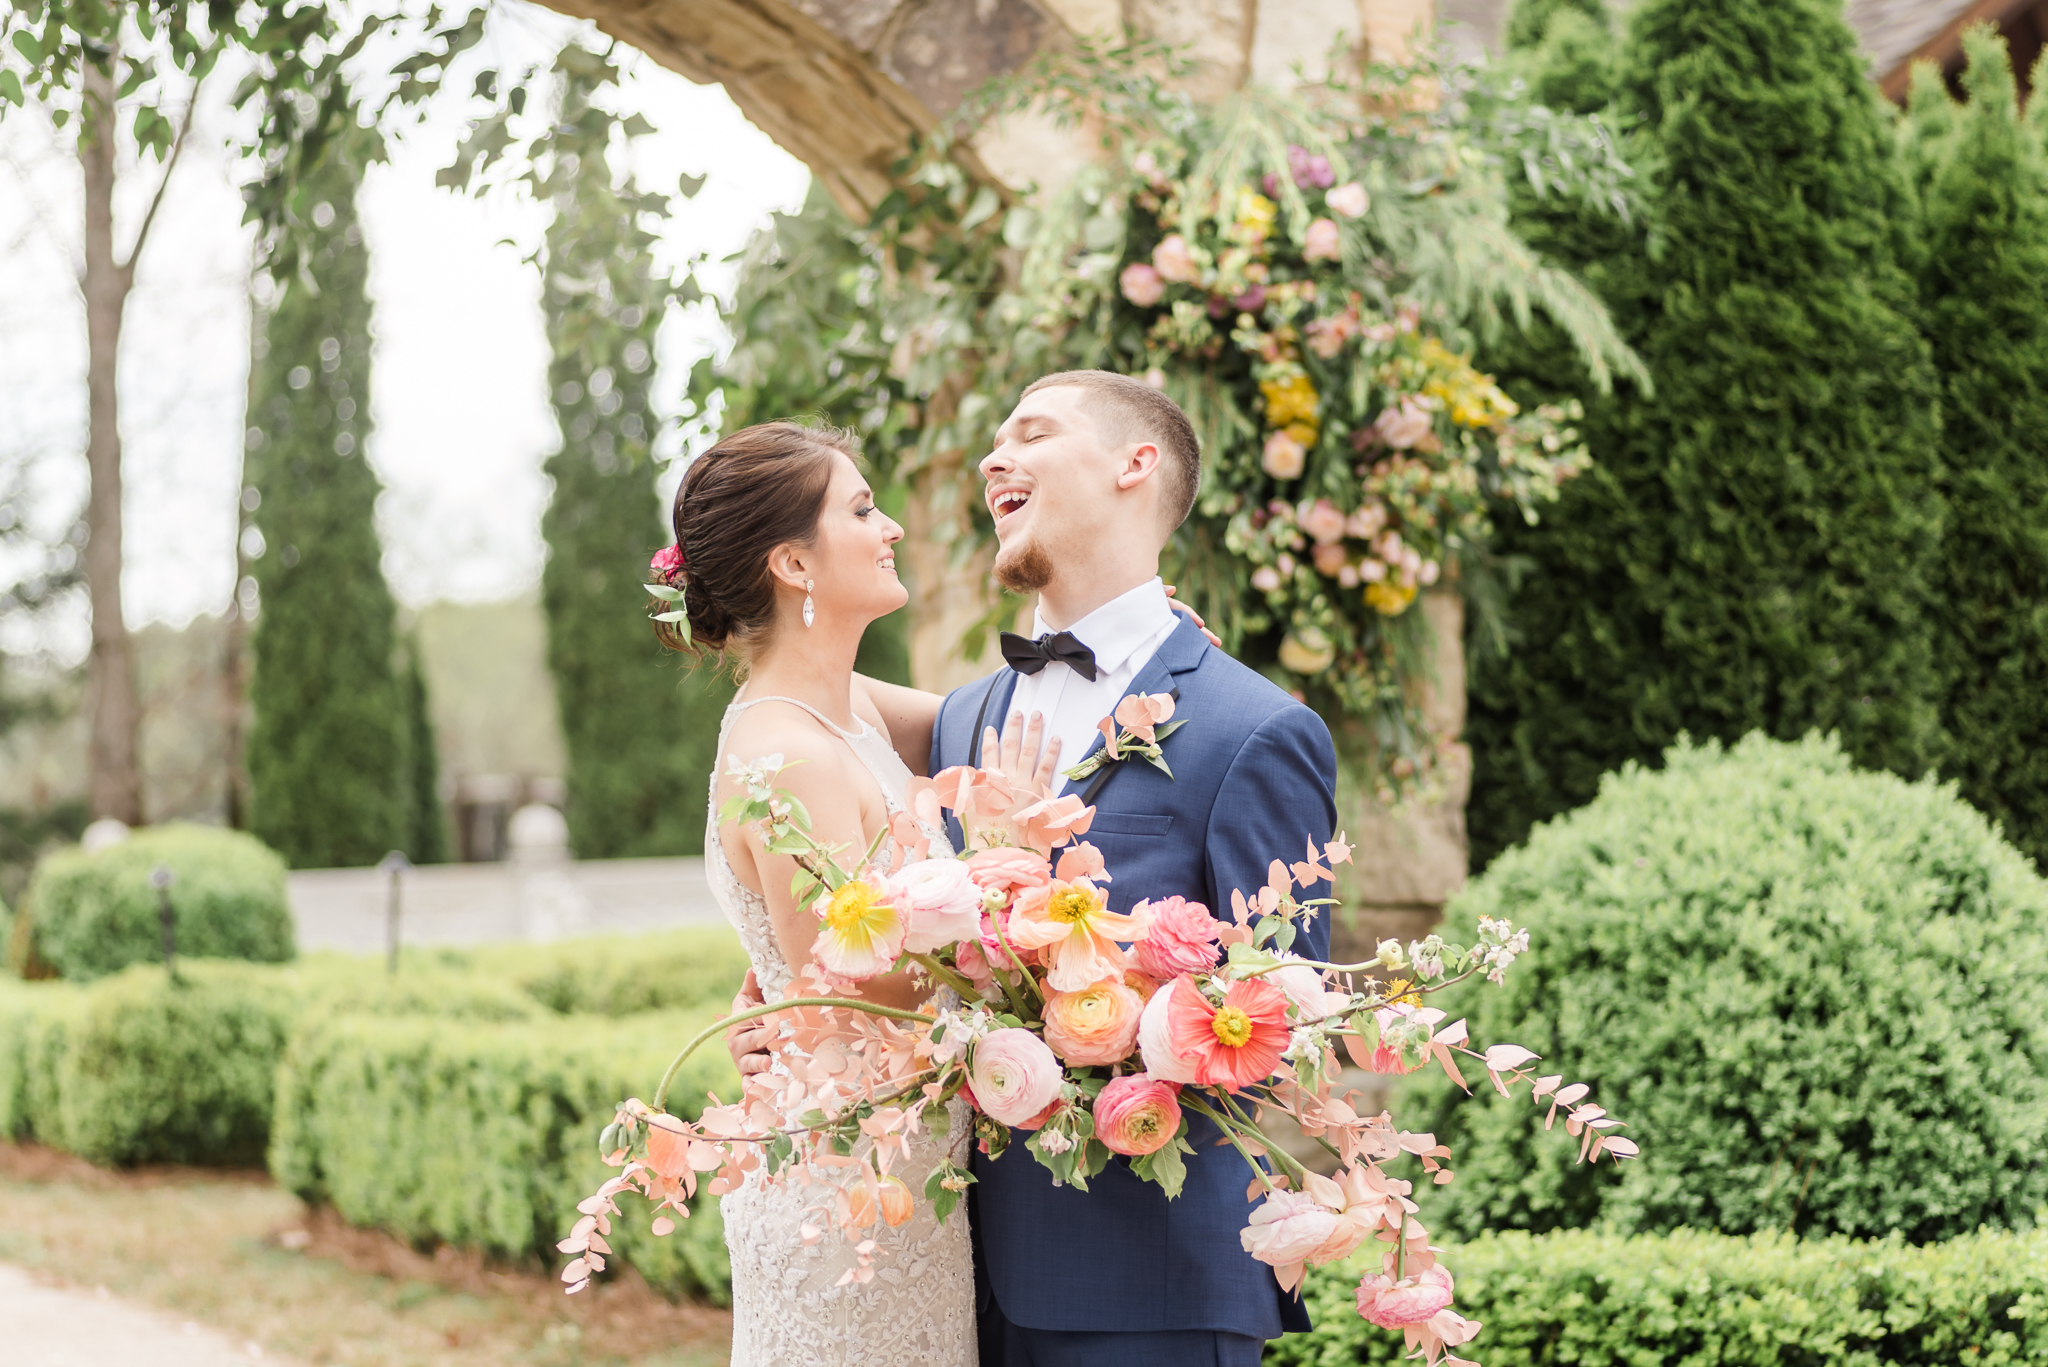 The Best Light and Airy Indianapolis Wedding Photographers-4.jpg